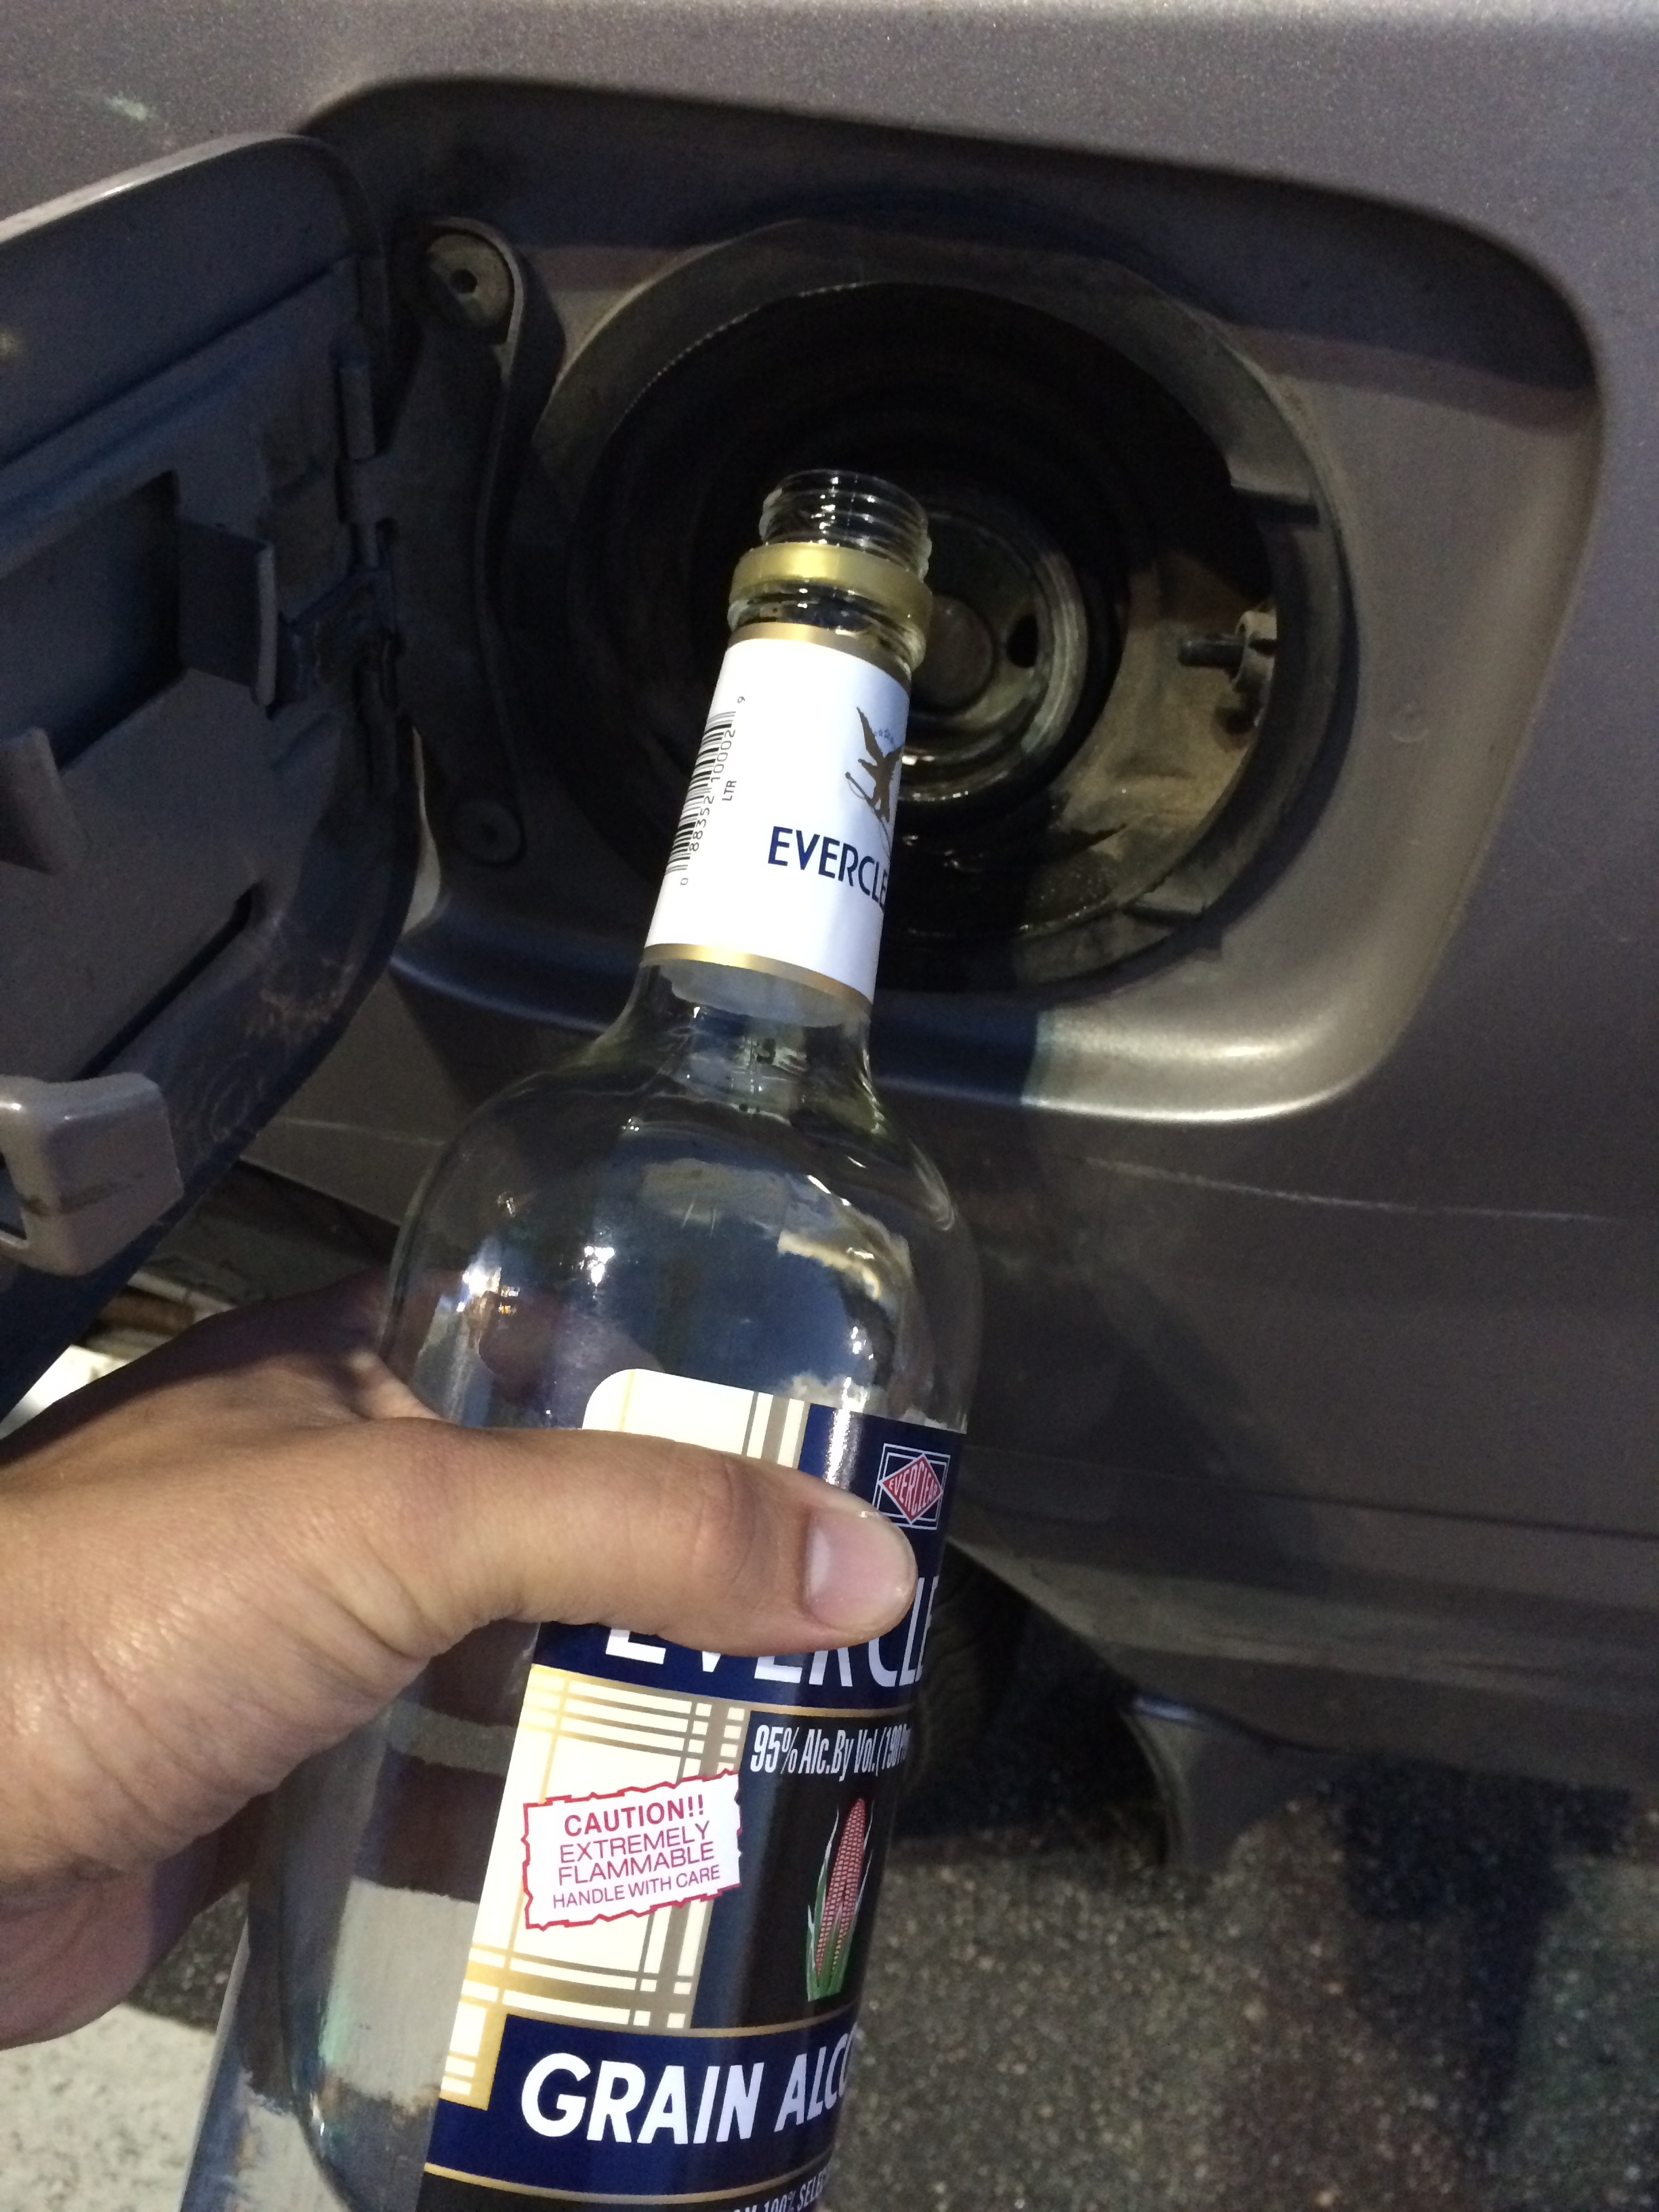 Yep. I put Everclear in my car. Complete waste of money and time.